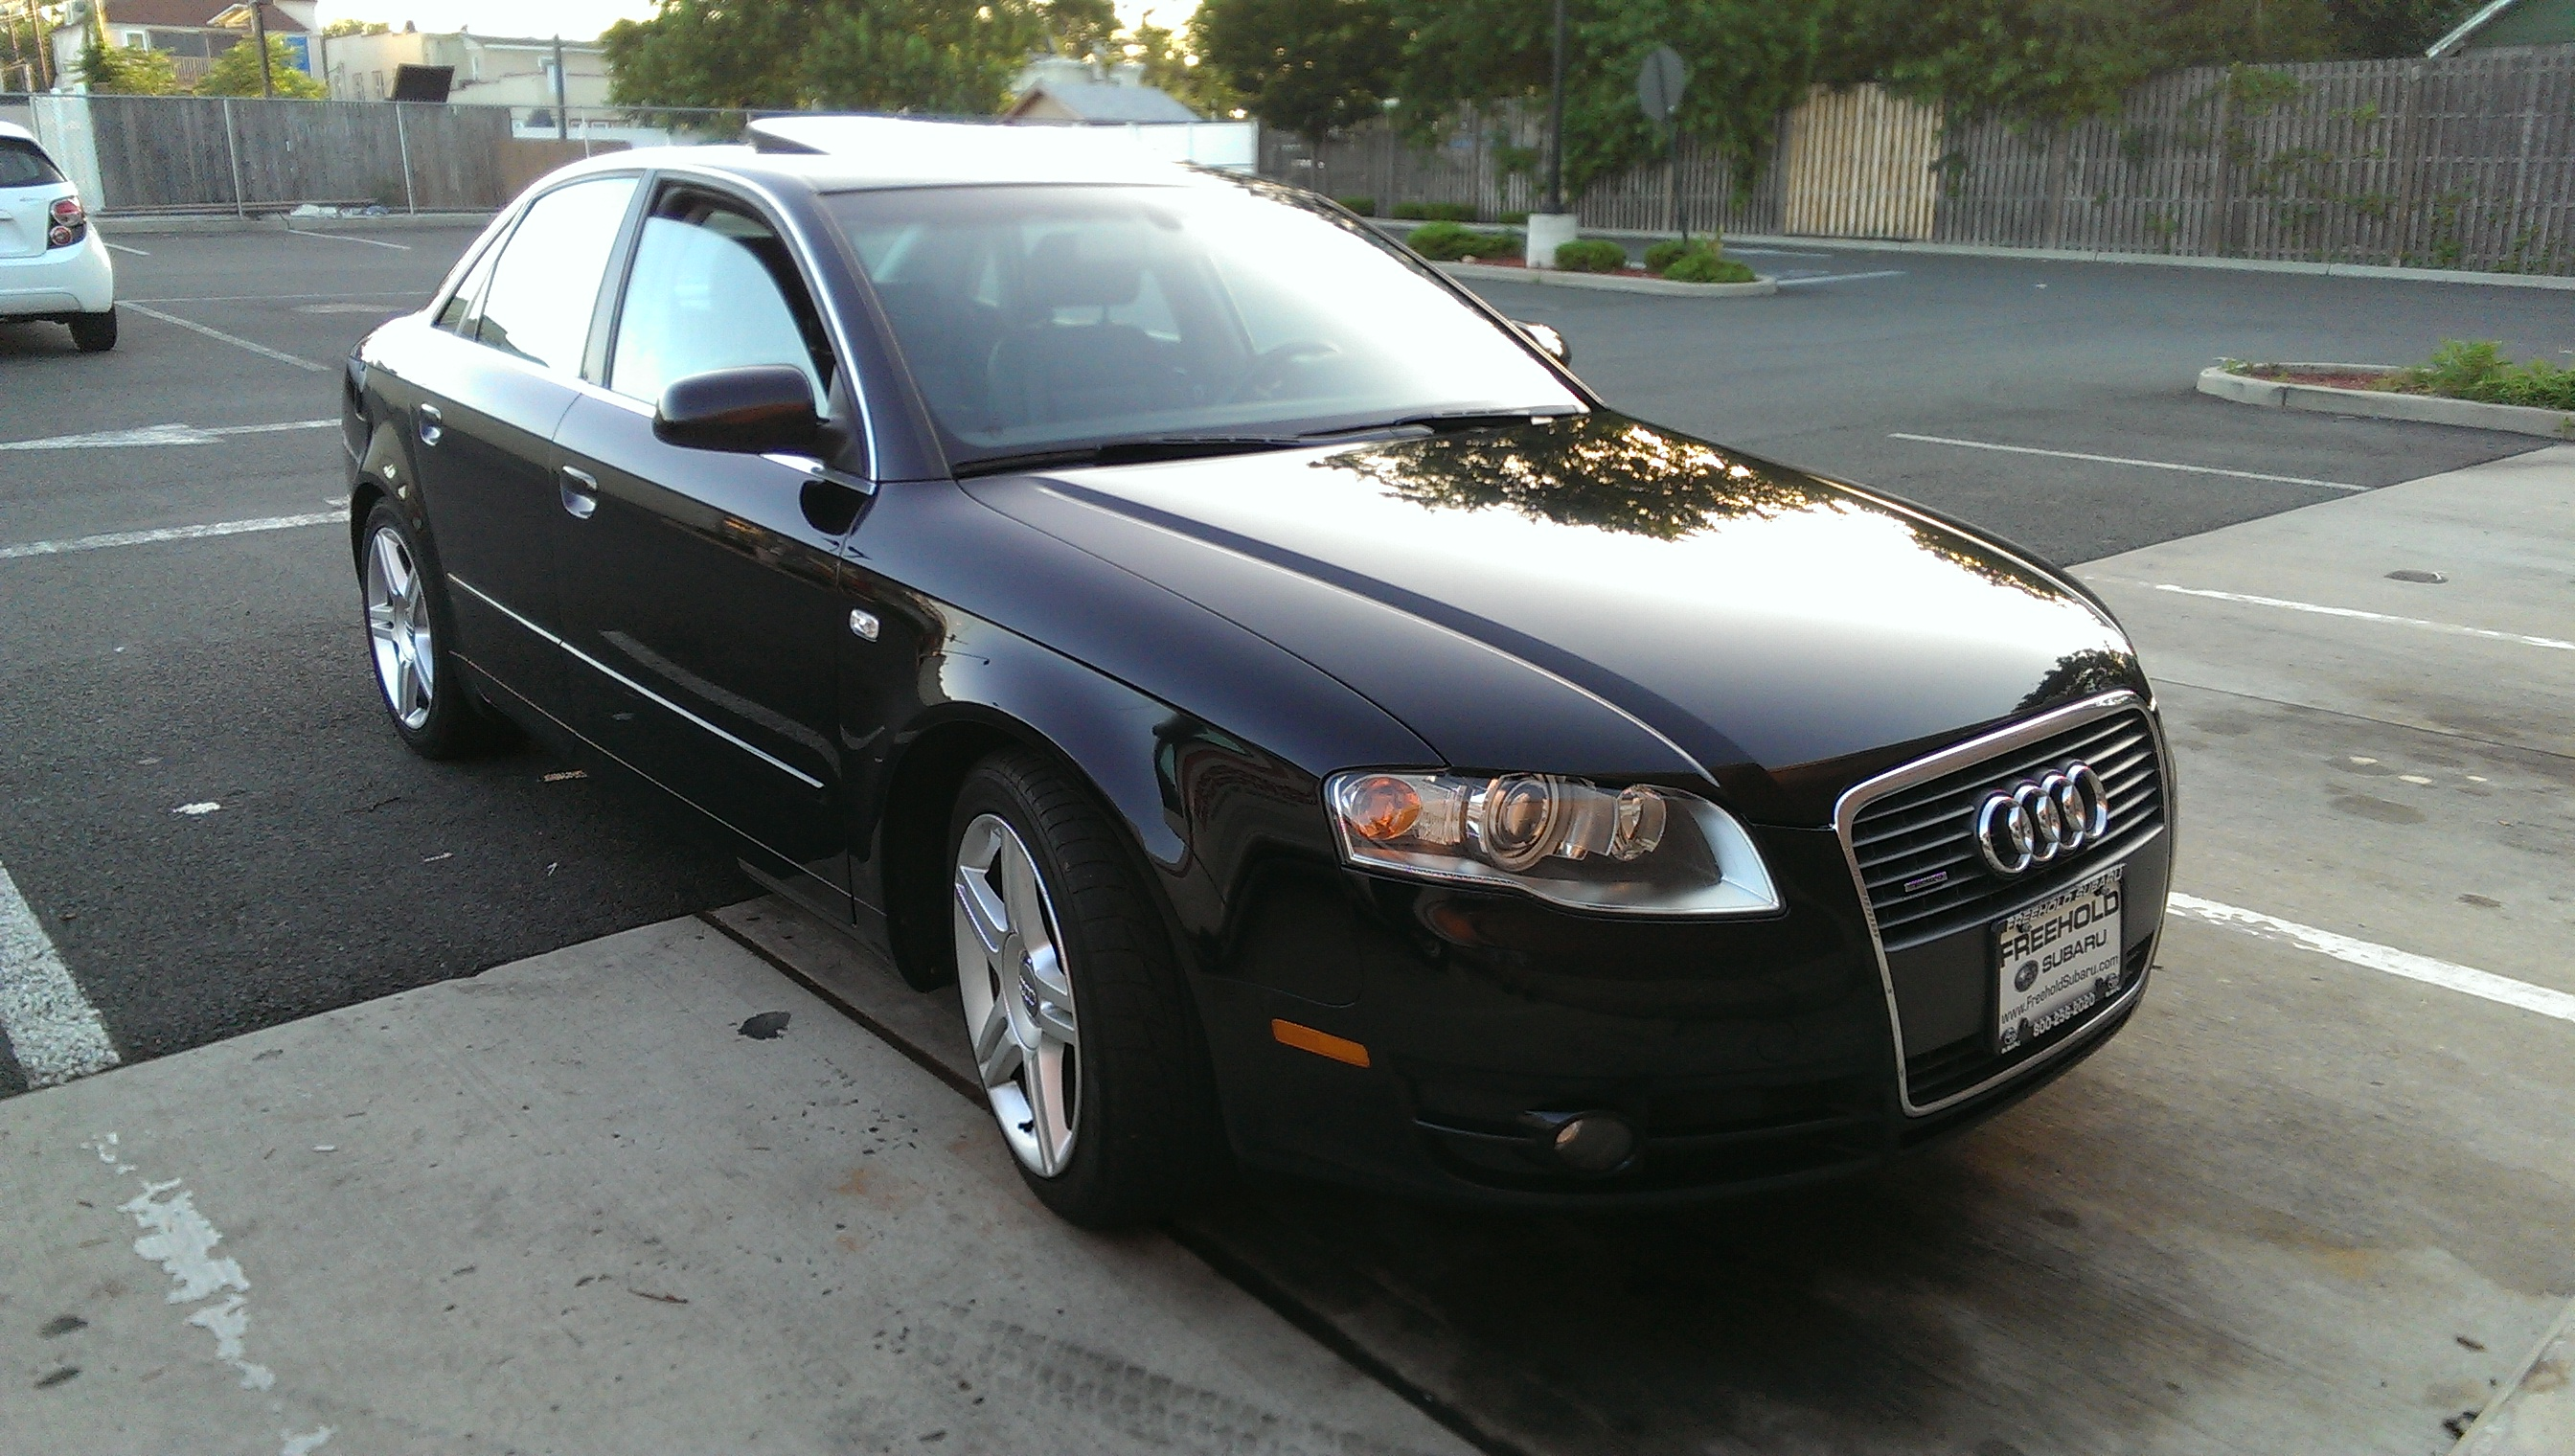 2007 audi a4 2.0t quattro sedan 4d - view all 2007 audi a4 2.0t